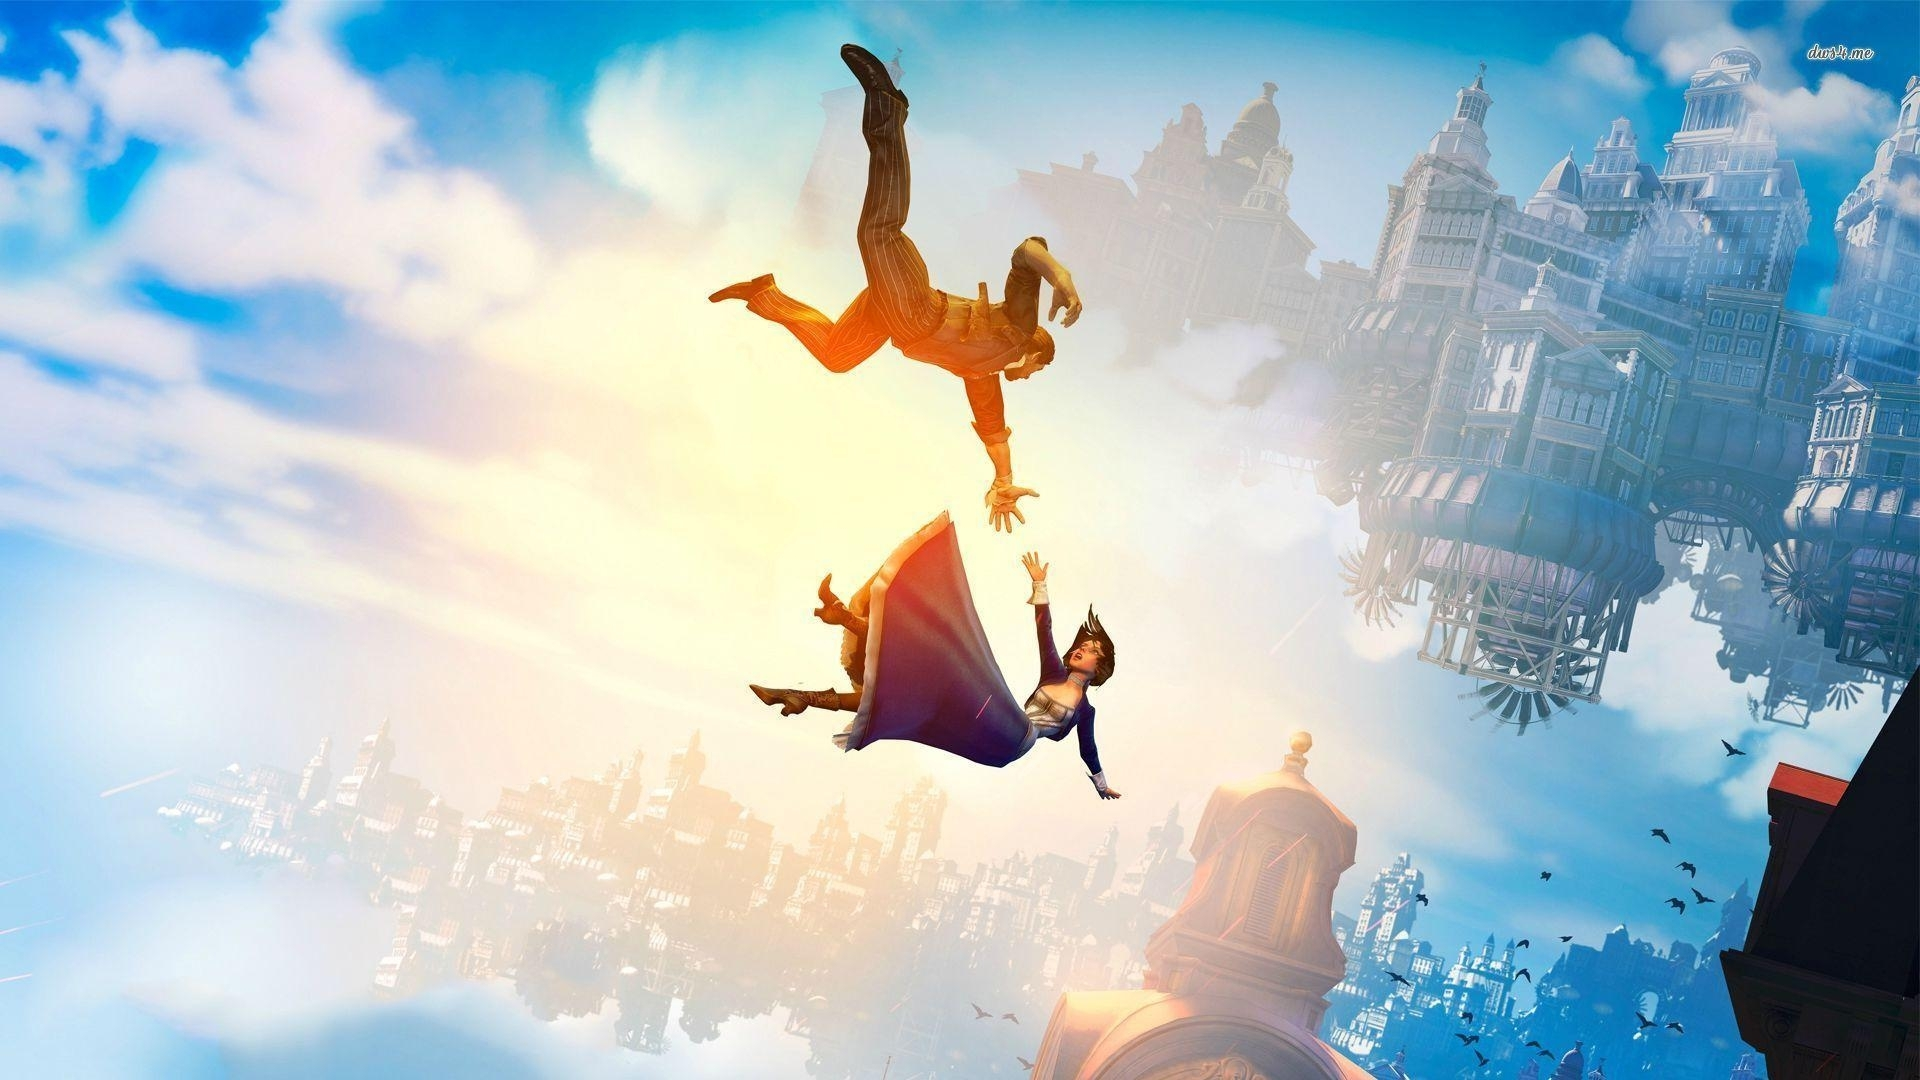 bioshock infinite wallpapers 1920x1080 - wallpaper cave